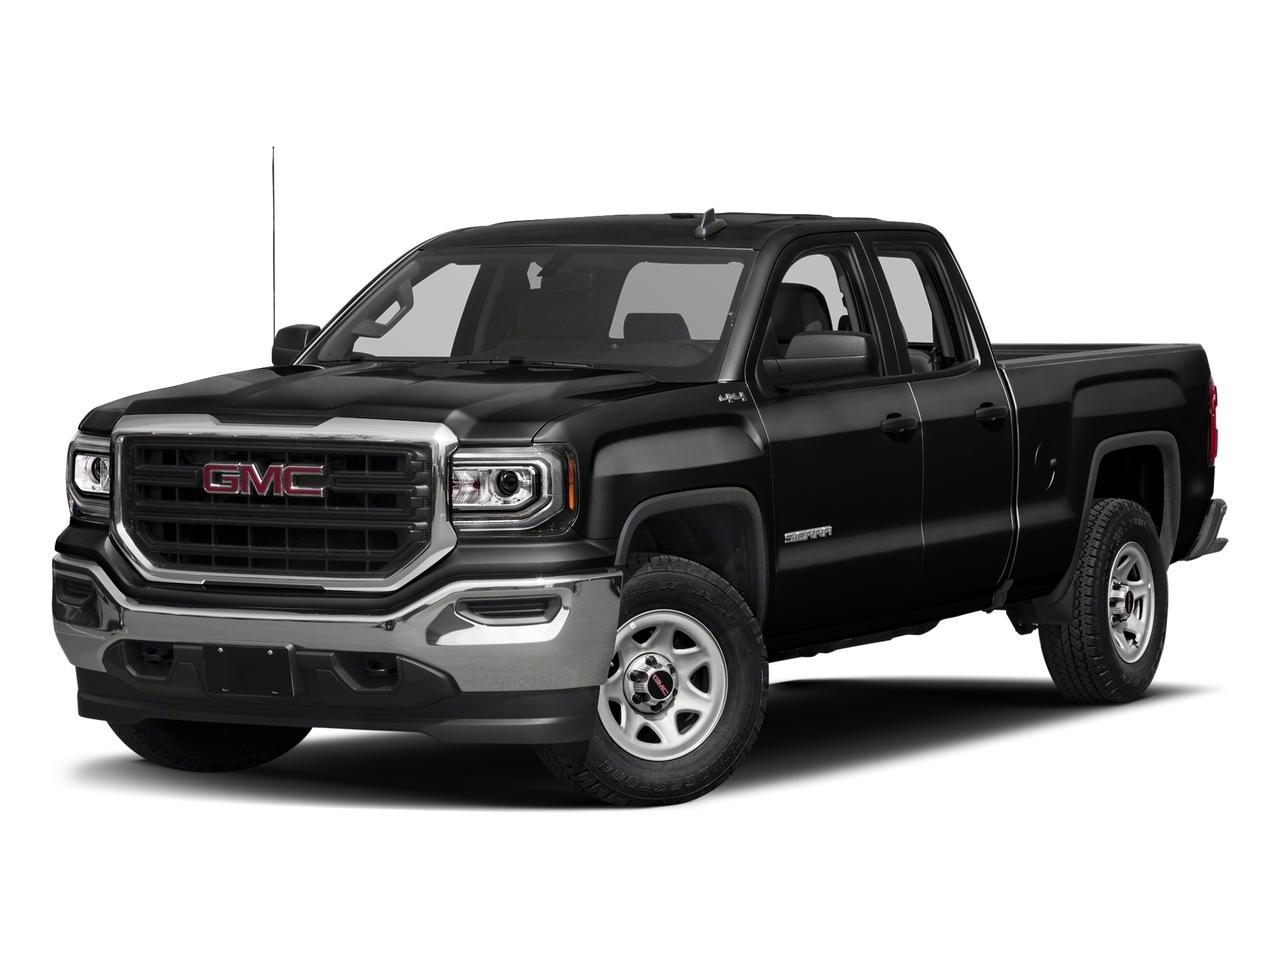 2018 GMC Sierra 1500 Vehicle Photo in Quakertown, PA 18951